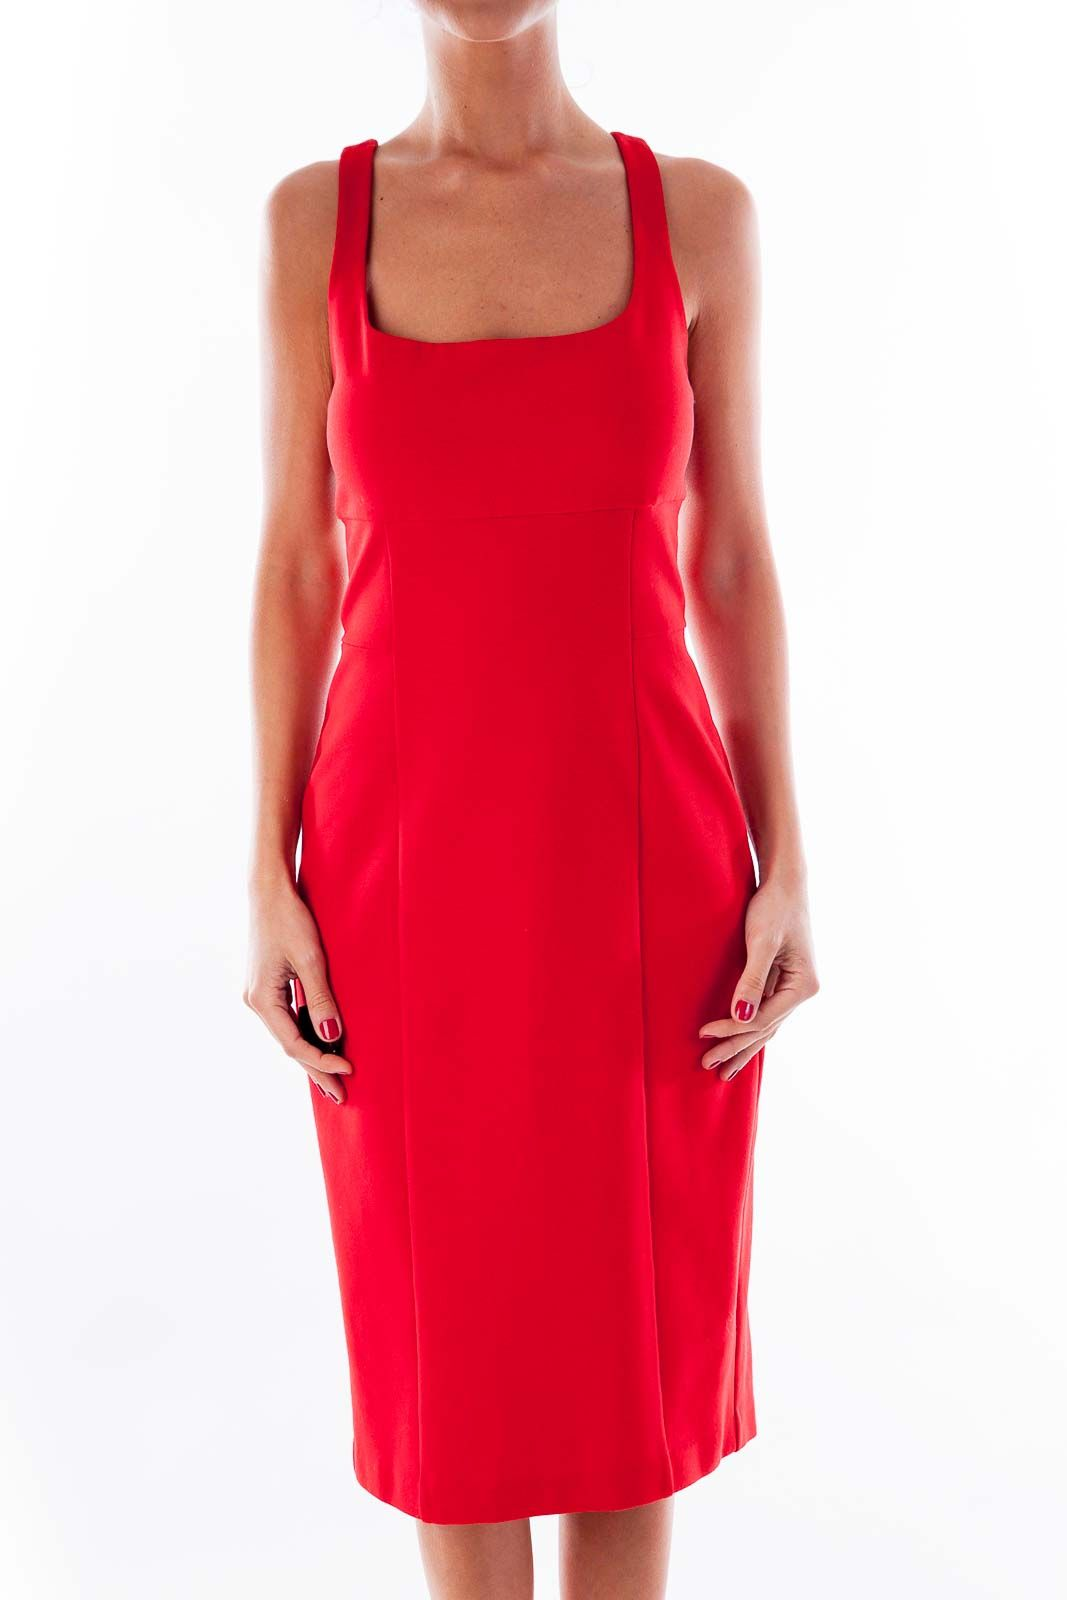 Classy date night dresses red cocktail dress by Diane Von ...